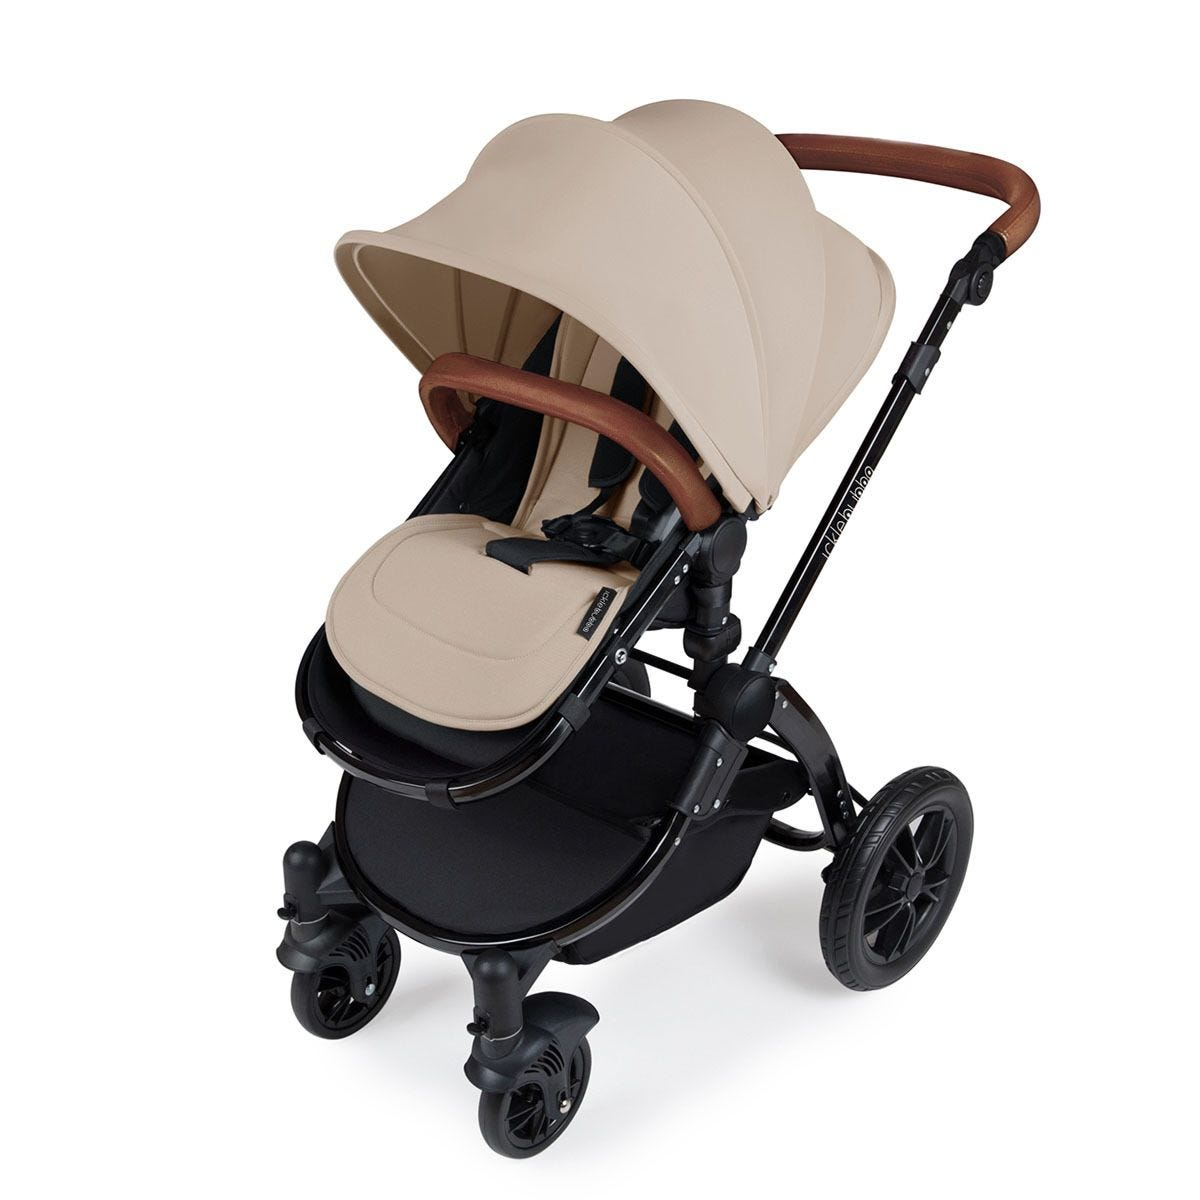 Ickle Bubba Stomp V3 All in One Travel System with Isofix Base - Sand on Black with Tan Handles